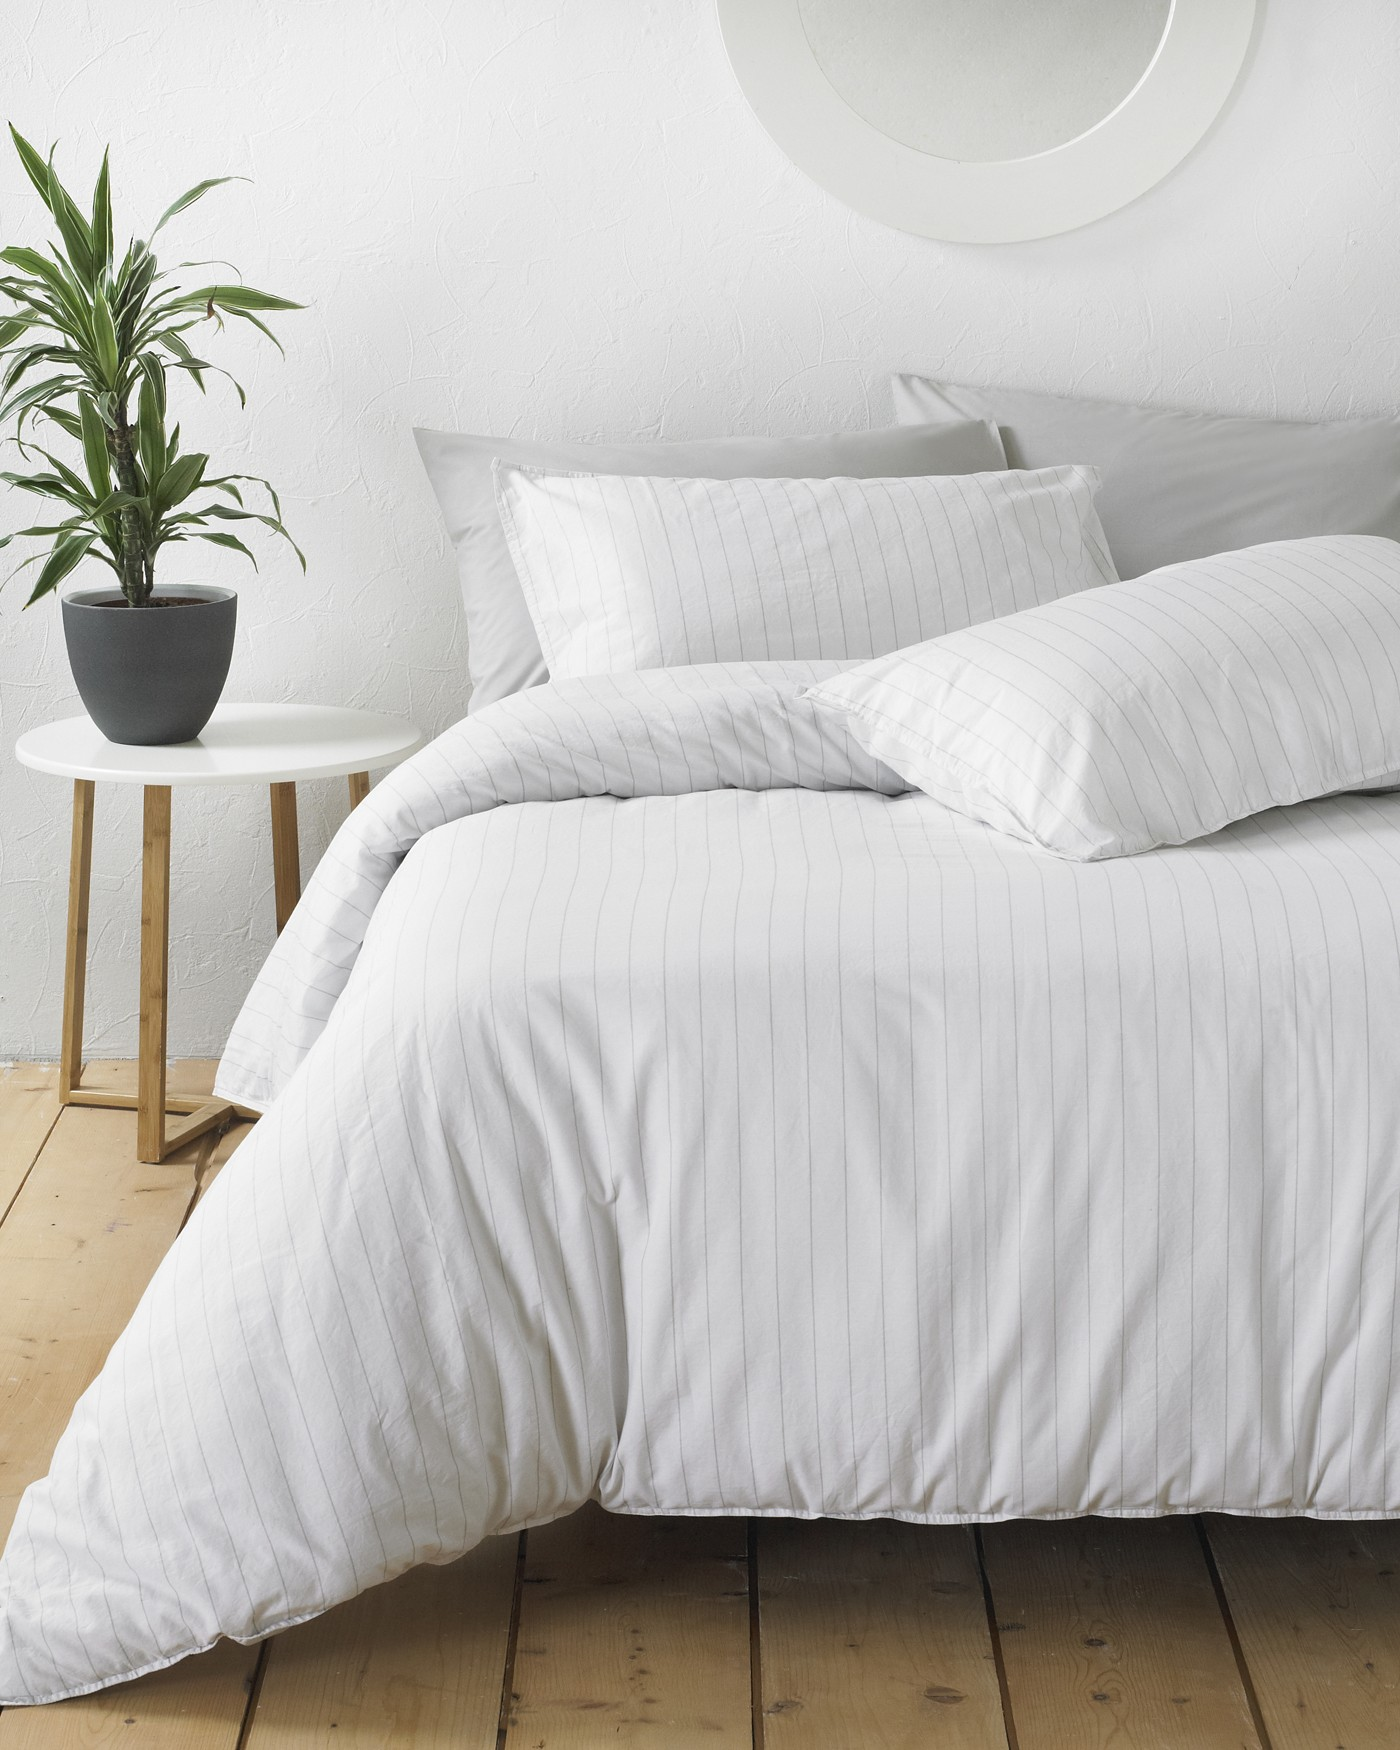 The Home Furnishings Company 100% Cotton Linear White/Grey Duvet Set